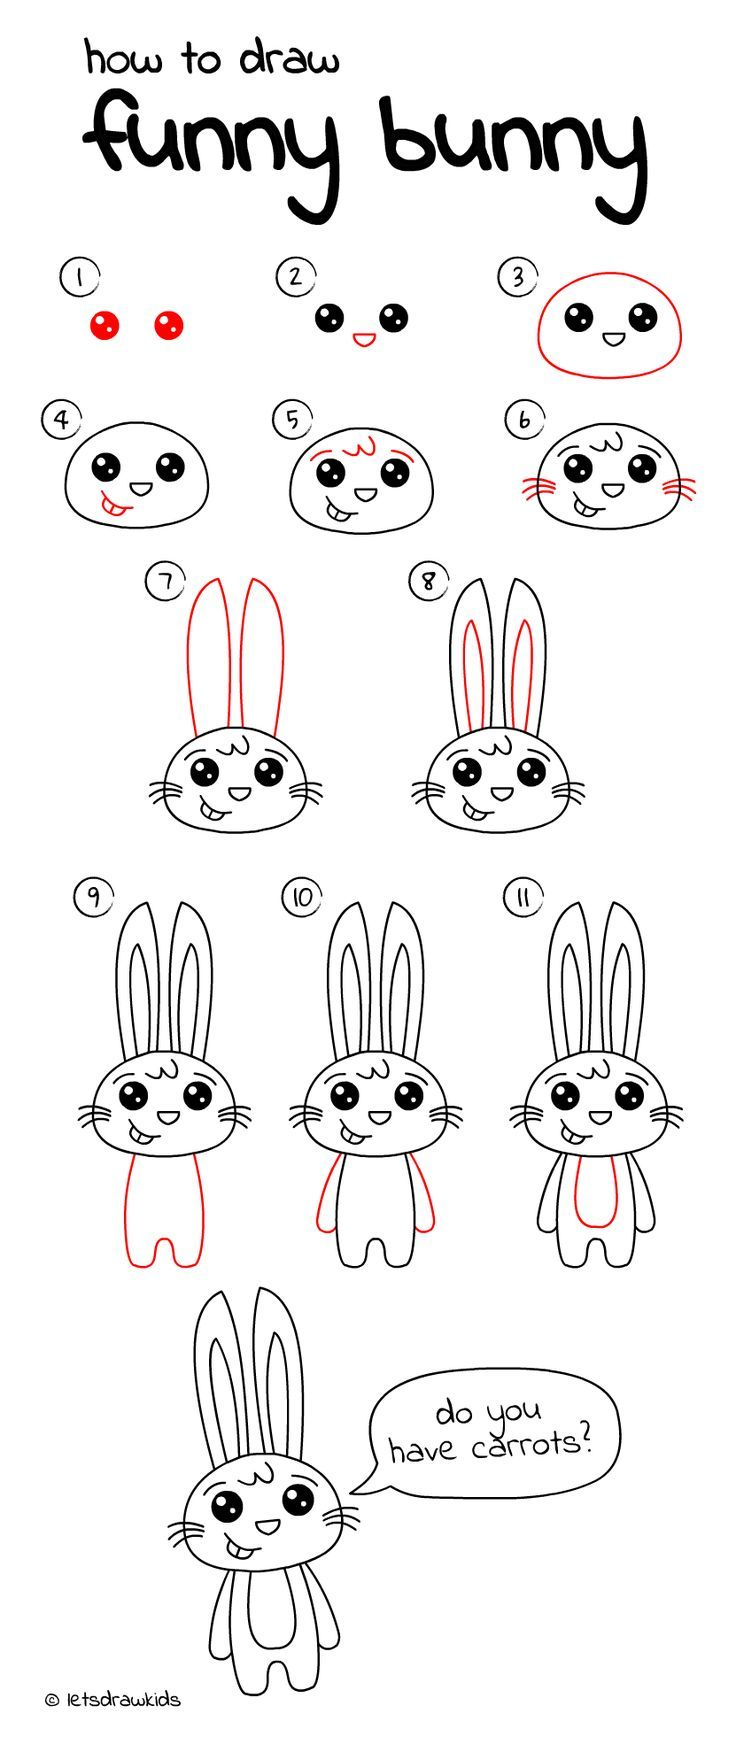 How to draw Funny Bunny. Easy drawing, step by step